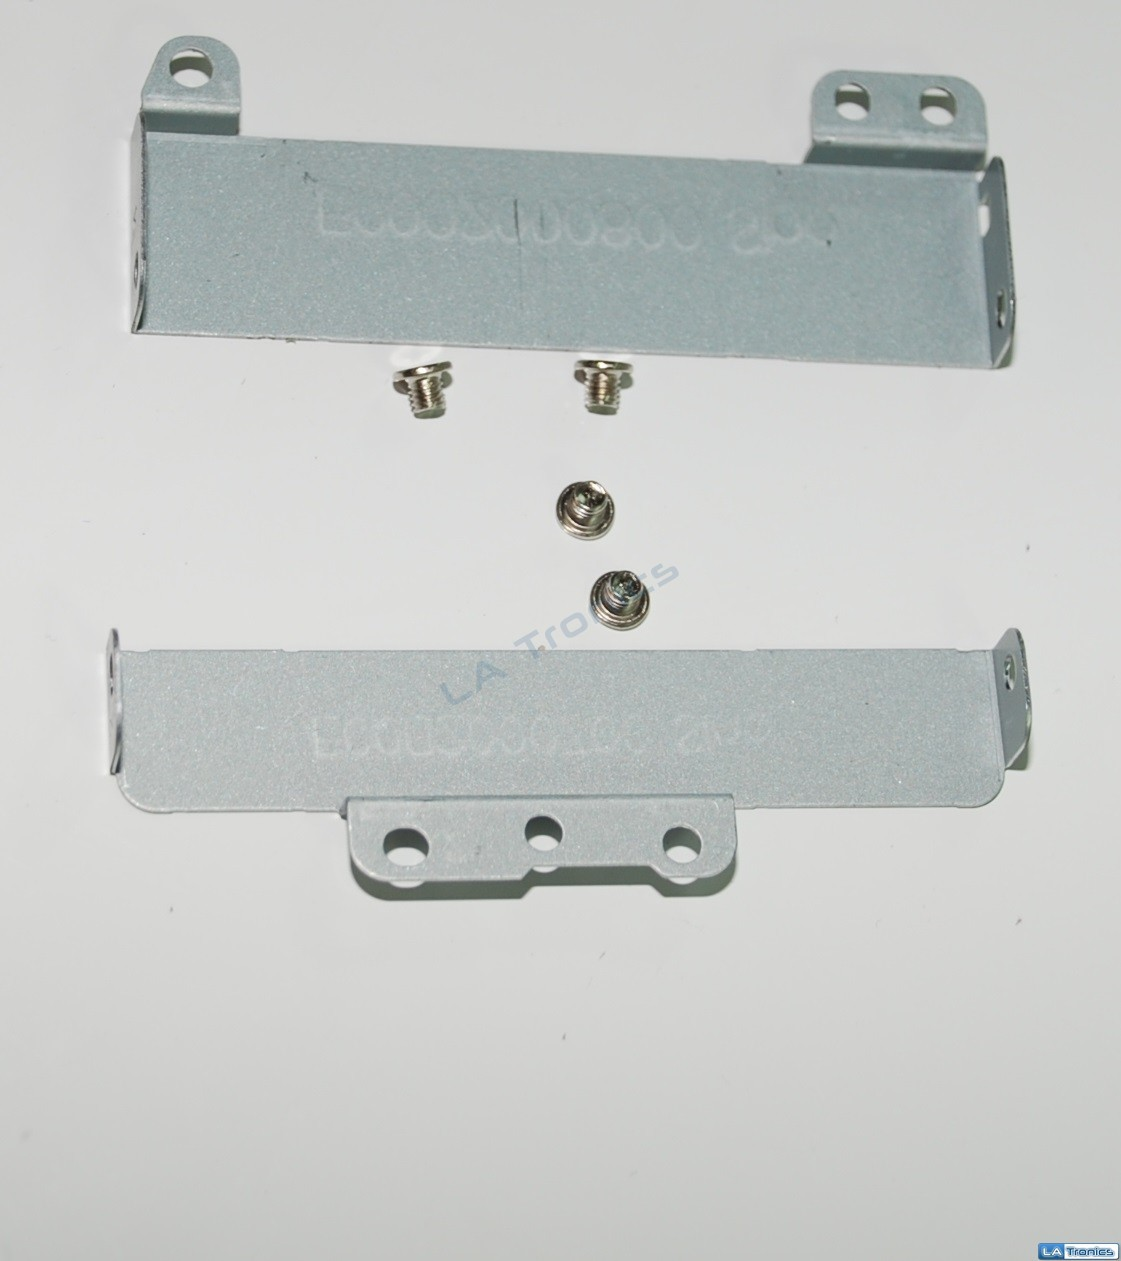 Acer M M5 M5-581T Series Hard Drive Caddy Brackets EC0O2000700 EC002000800